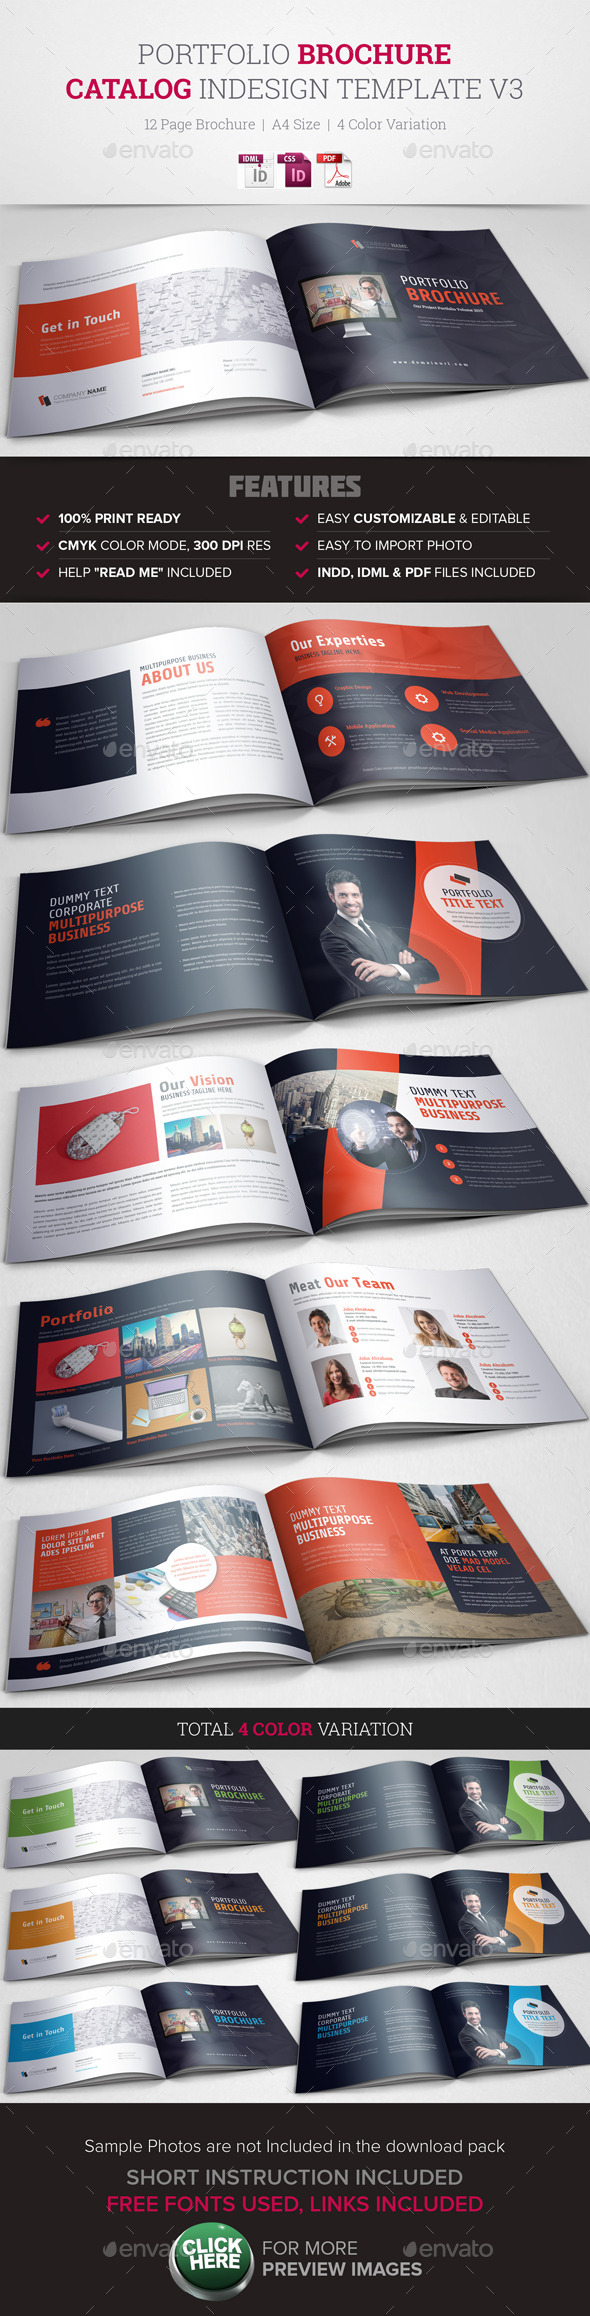 GraphicRiver Portfolio Brochure InDesign Template v3 10766959